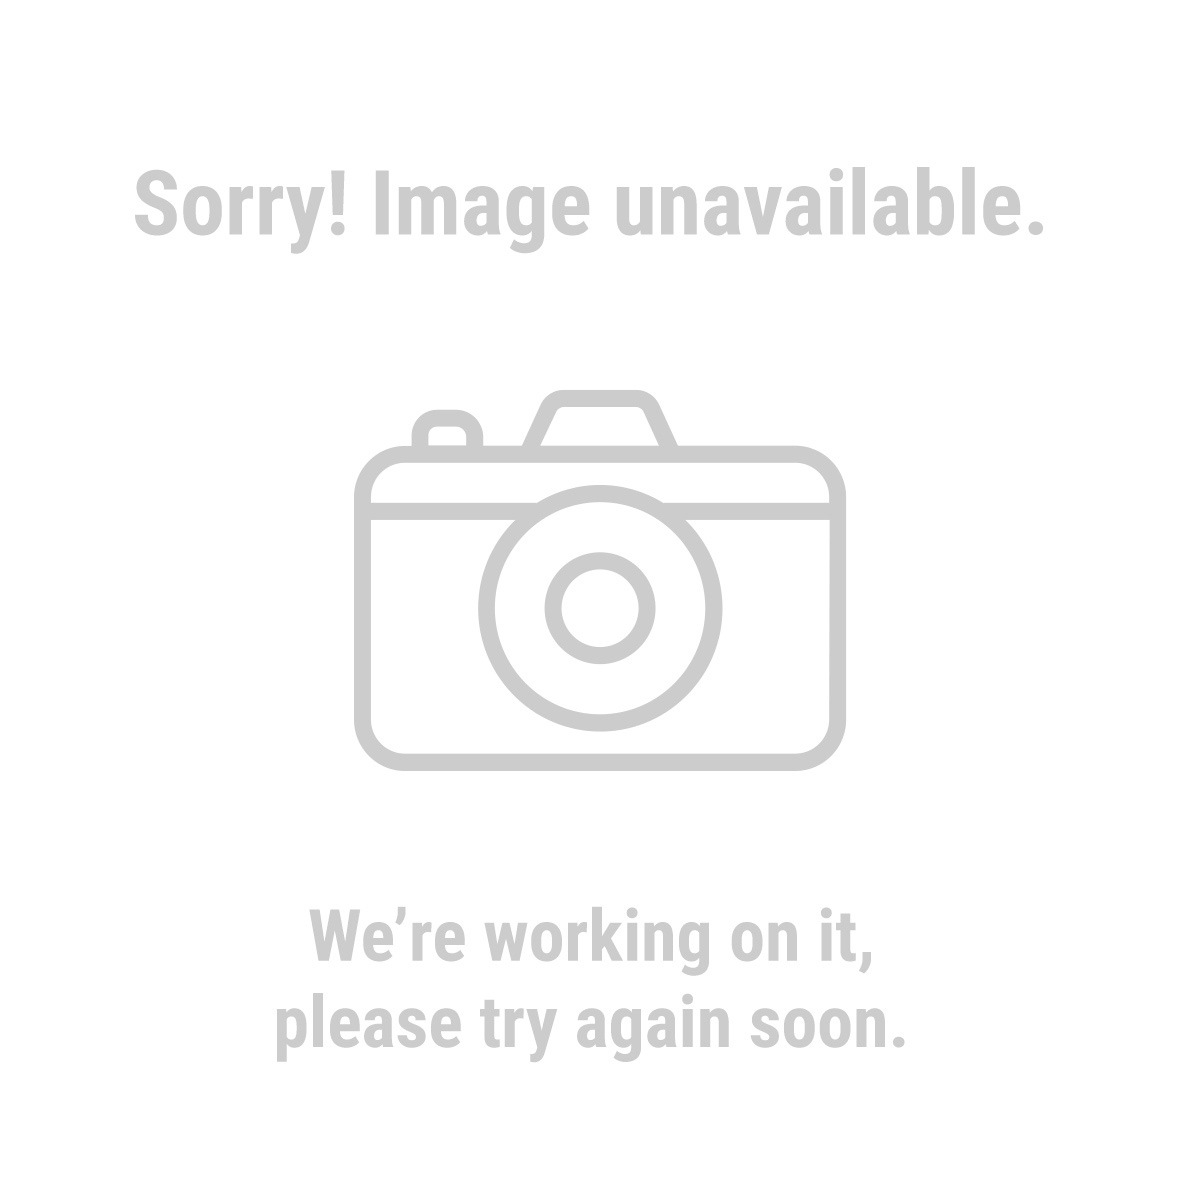 """Krause & Becker 4183 Pack of 12 3"""" Industrial Grade Chip Brushes"""